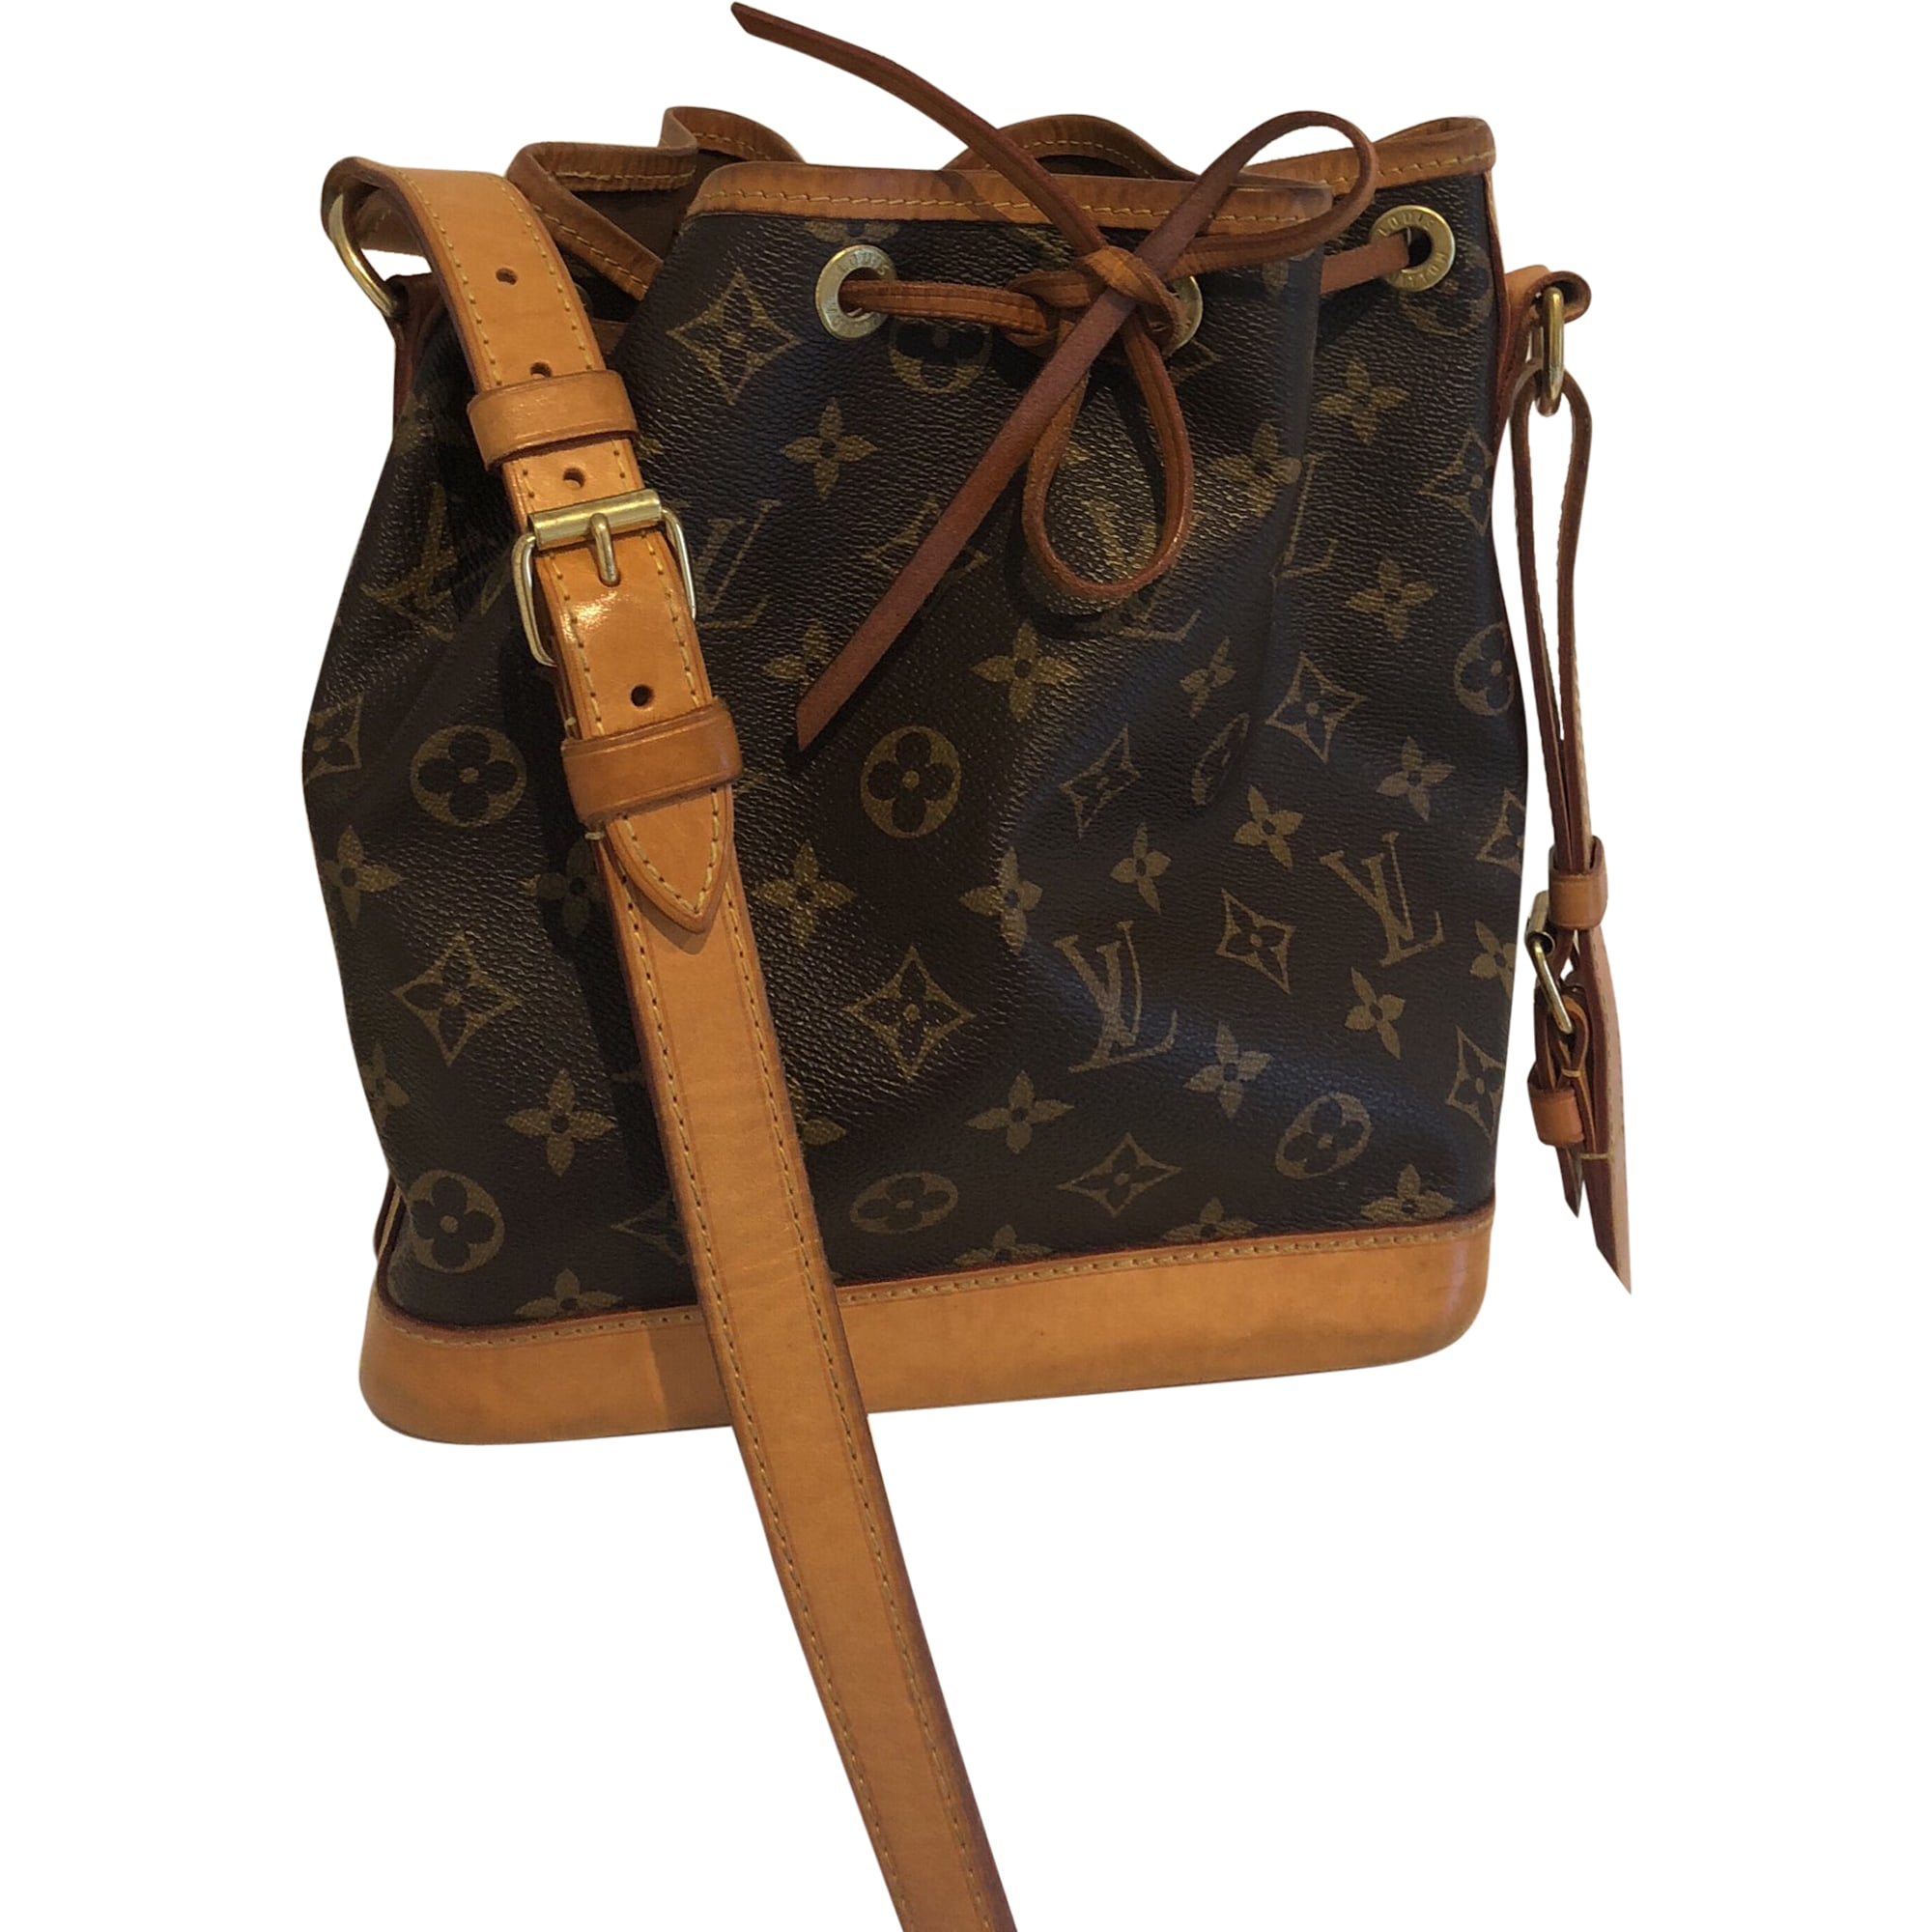 17a5078619be Sac en bandoulière en cuir LOUIS VUITTON no marron - 8008678